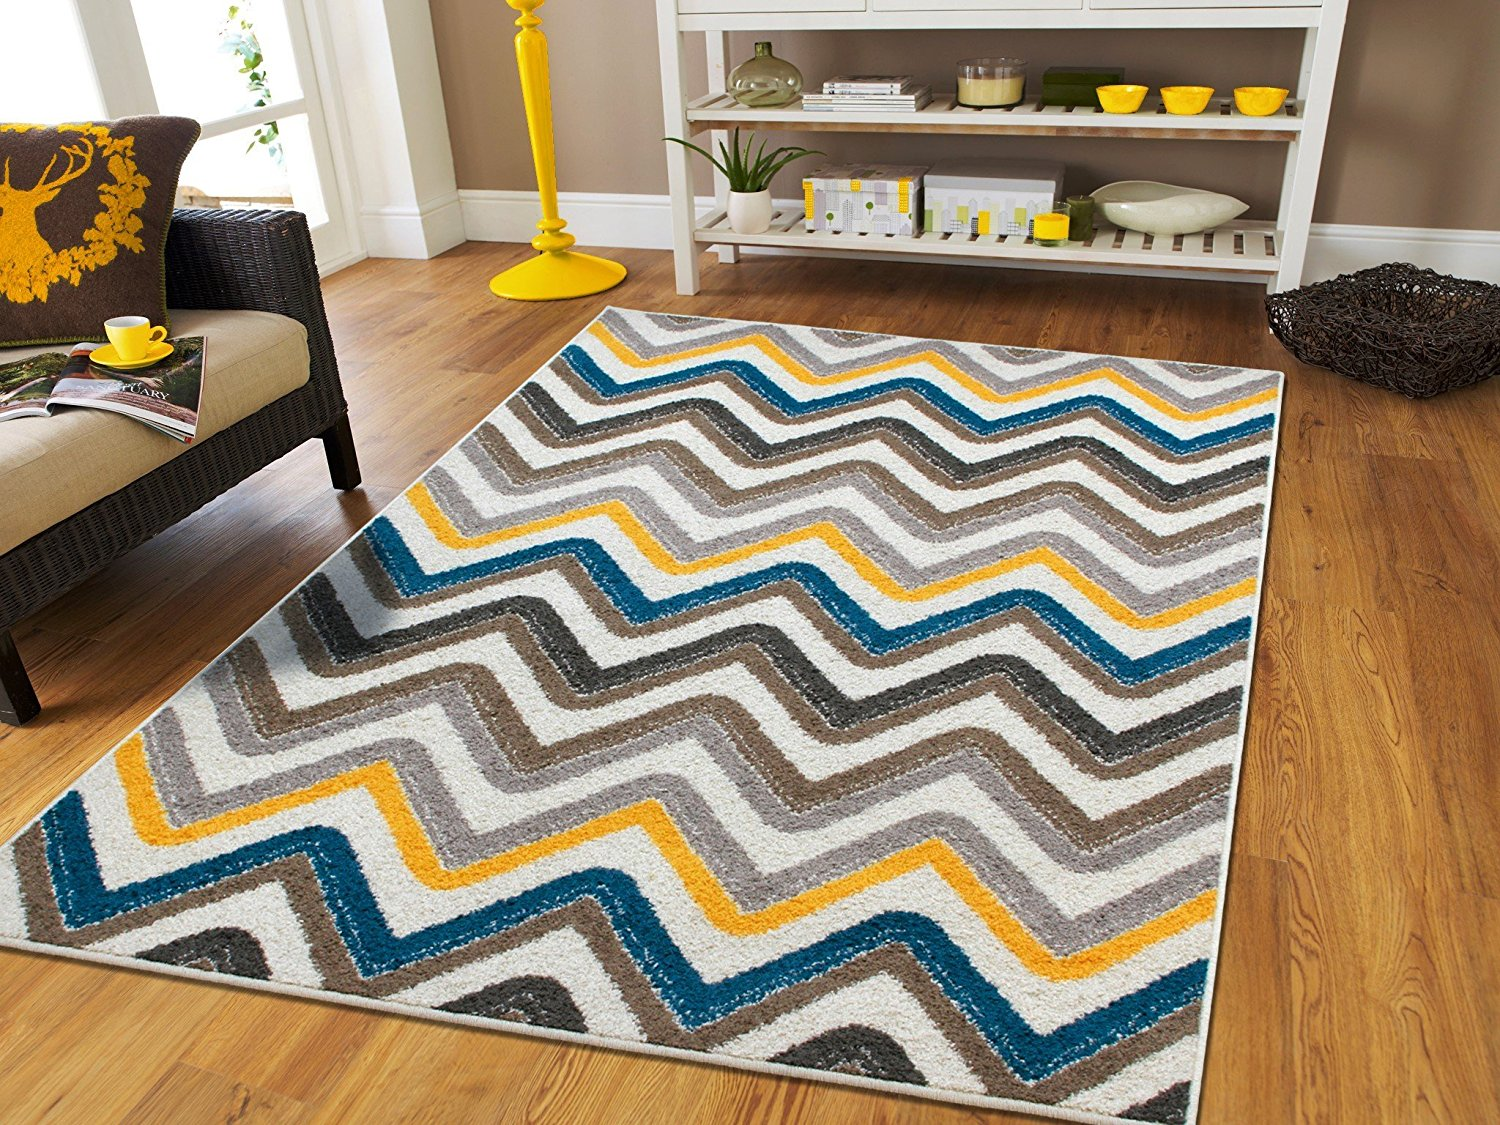 kitchen floor rugs roll around island new fashion luxury chevron for living room zig zag 2x4 contemporary rug mat blue and grey yellow beige 2x3 walmart com